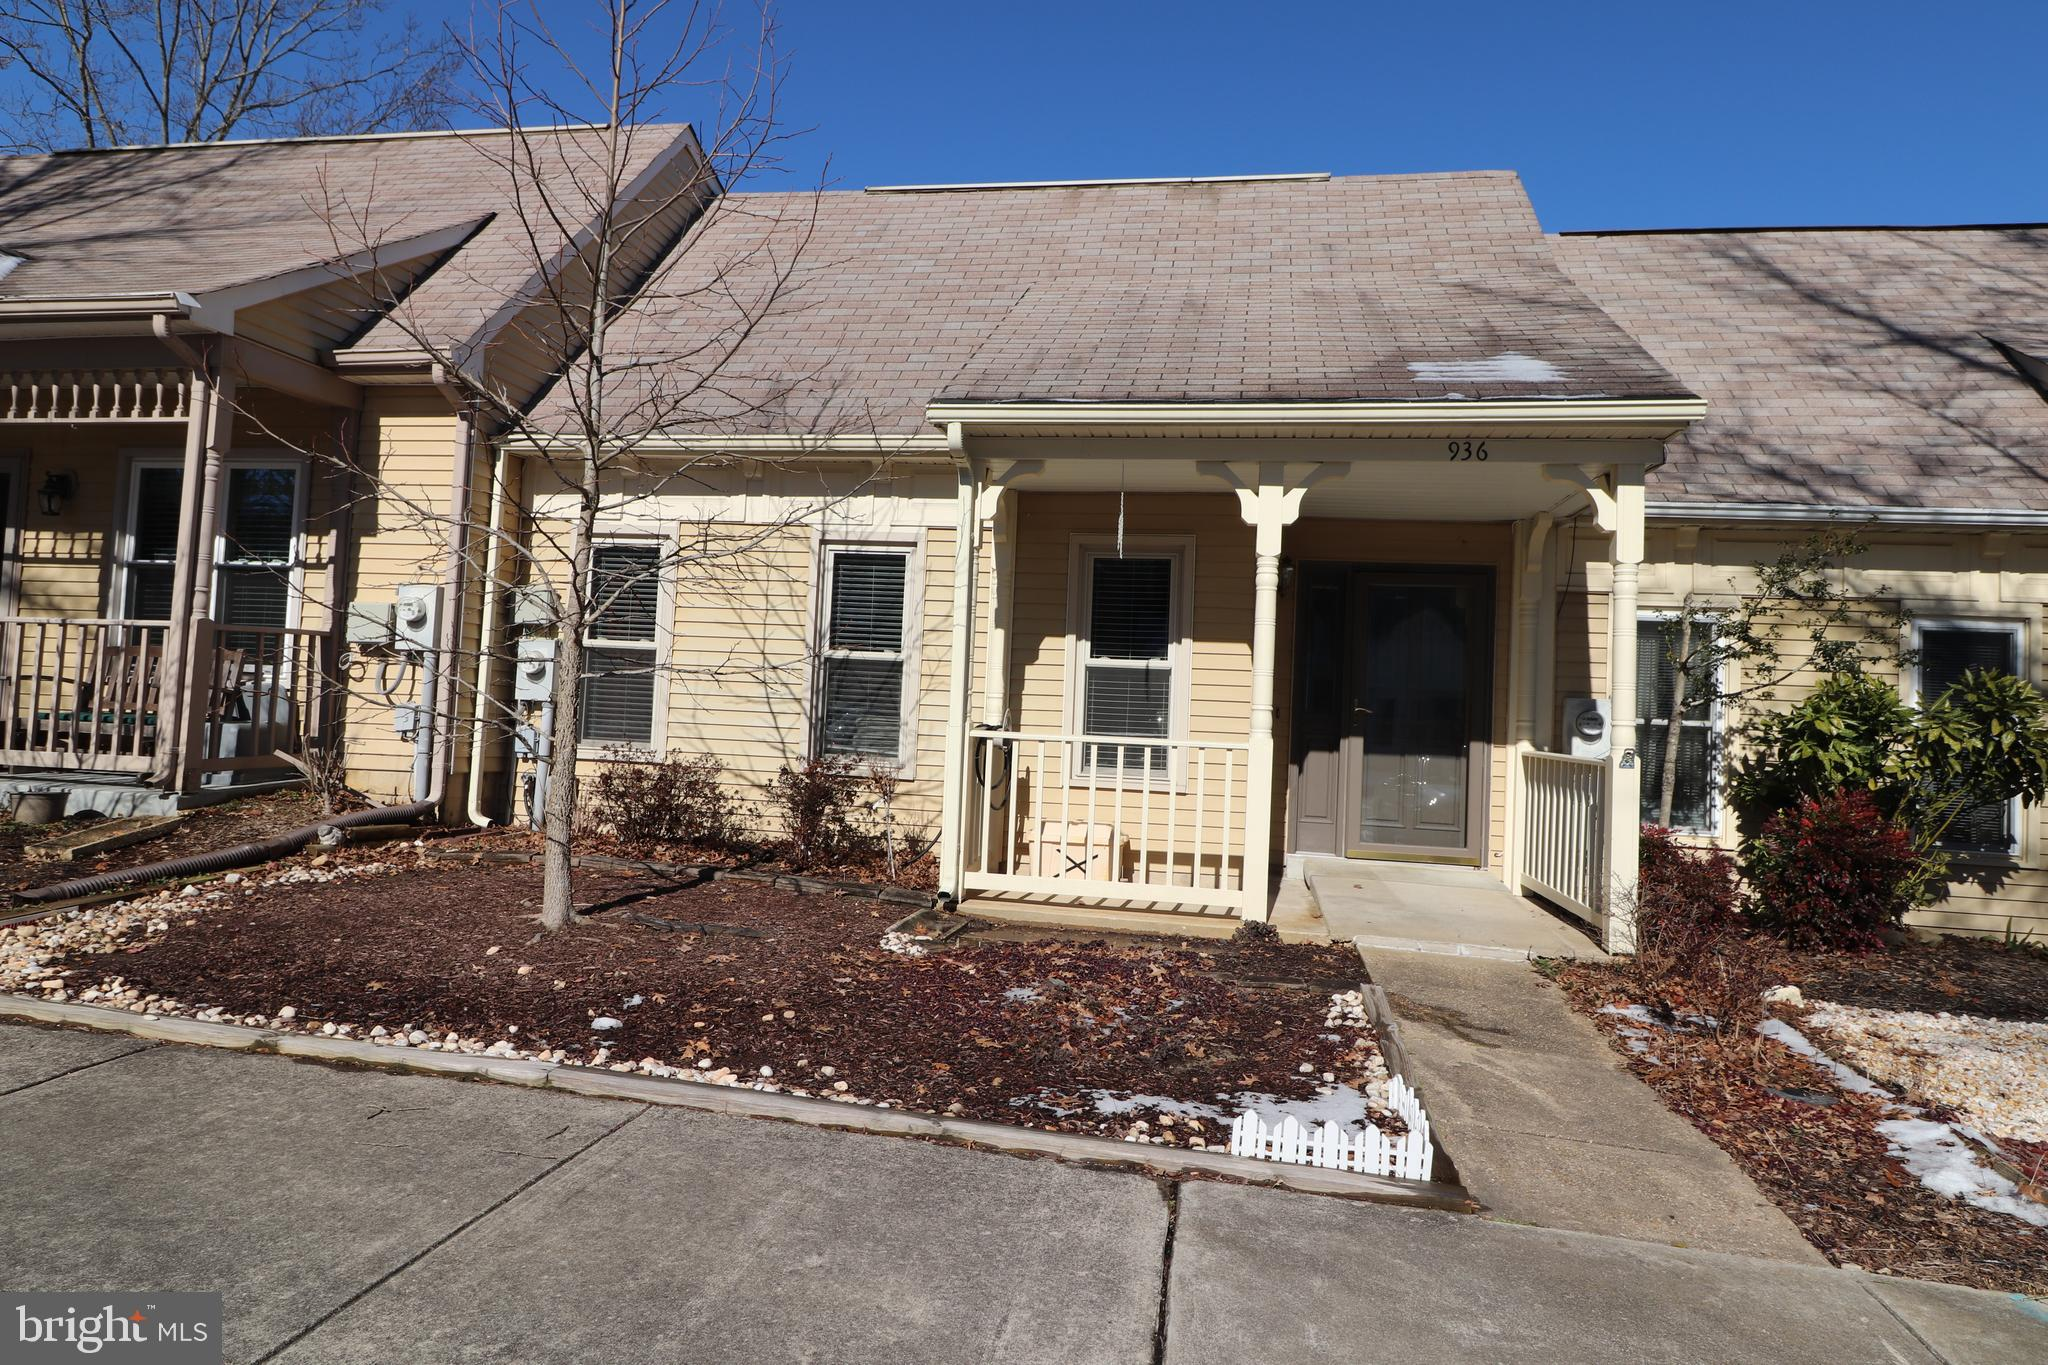 Great location for this villa style townhouse. one level living, and close to the Heritage Harbour Community Center. Covered front porch, and access to the private deck from both bedrooms. Kitchen is open to the living room, a one of a kind feature. This active adult (55+ years) neighborhood offers community amenities include but not limited to the community center with the outdoor pool, indoor pool, meeting rooms, theatres, library, billiard room, fitness center wood shop,  pier, marina with some boat slips, the tennis court(s), and available golf memberships. One time recreation and registration fee of $2,075 paid at settlement by the buyer.